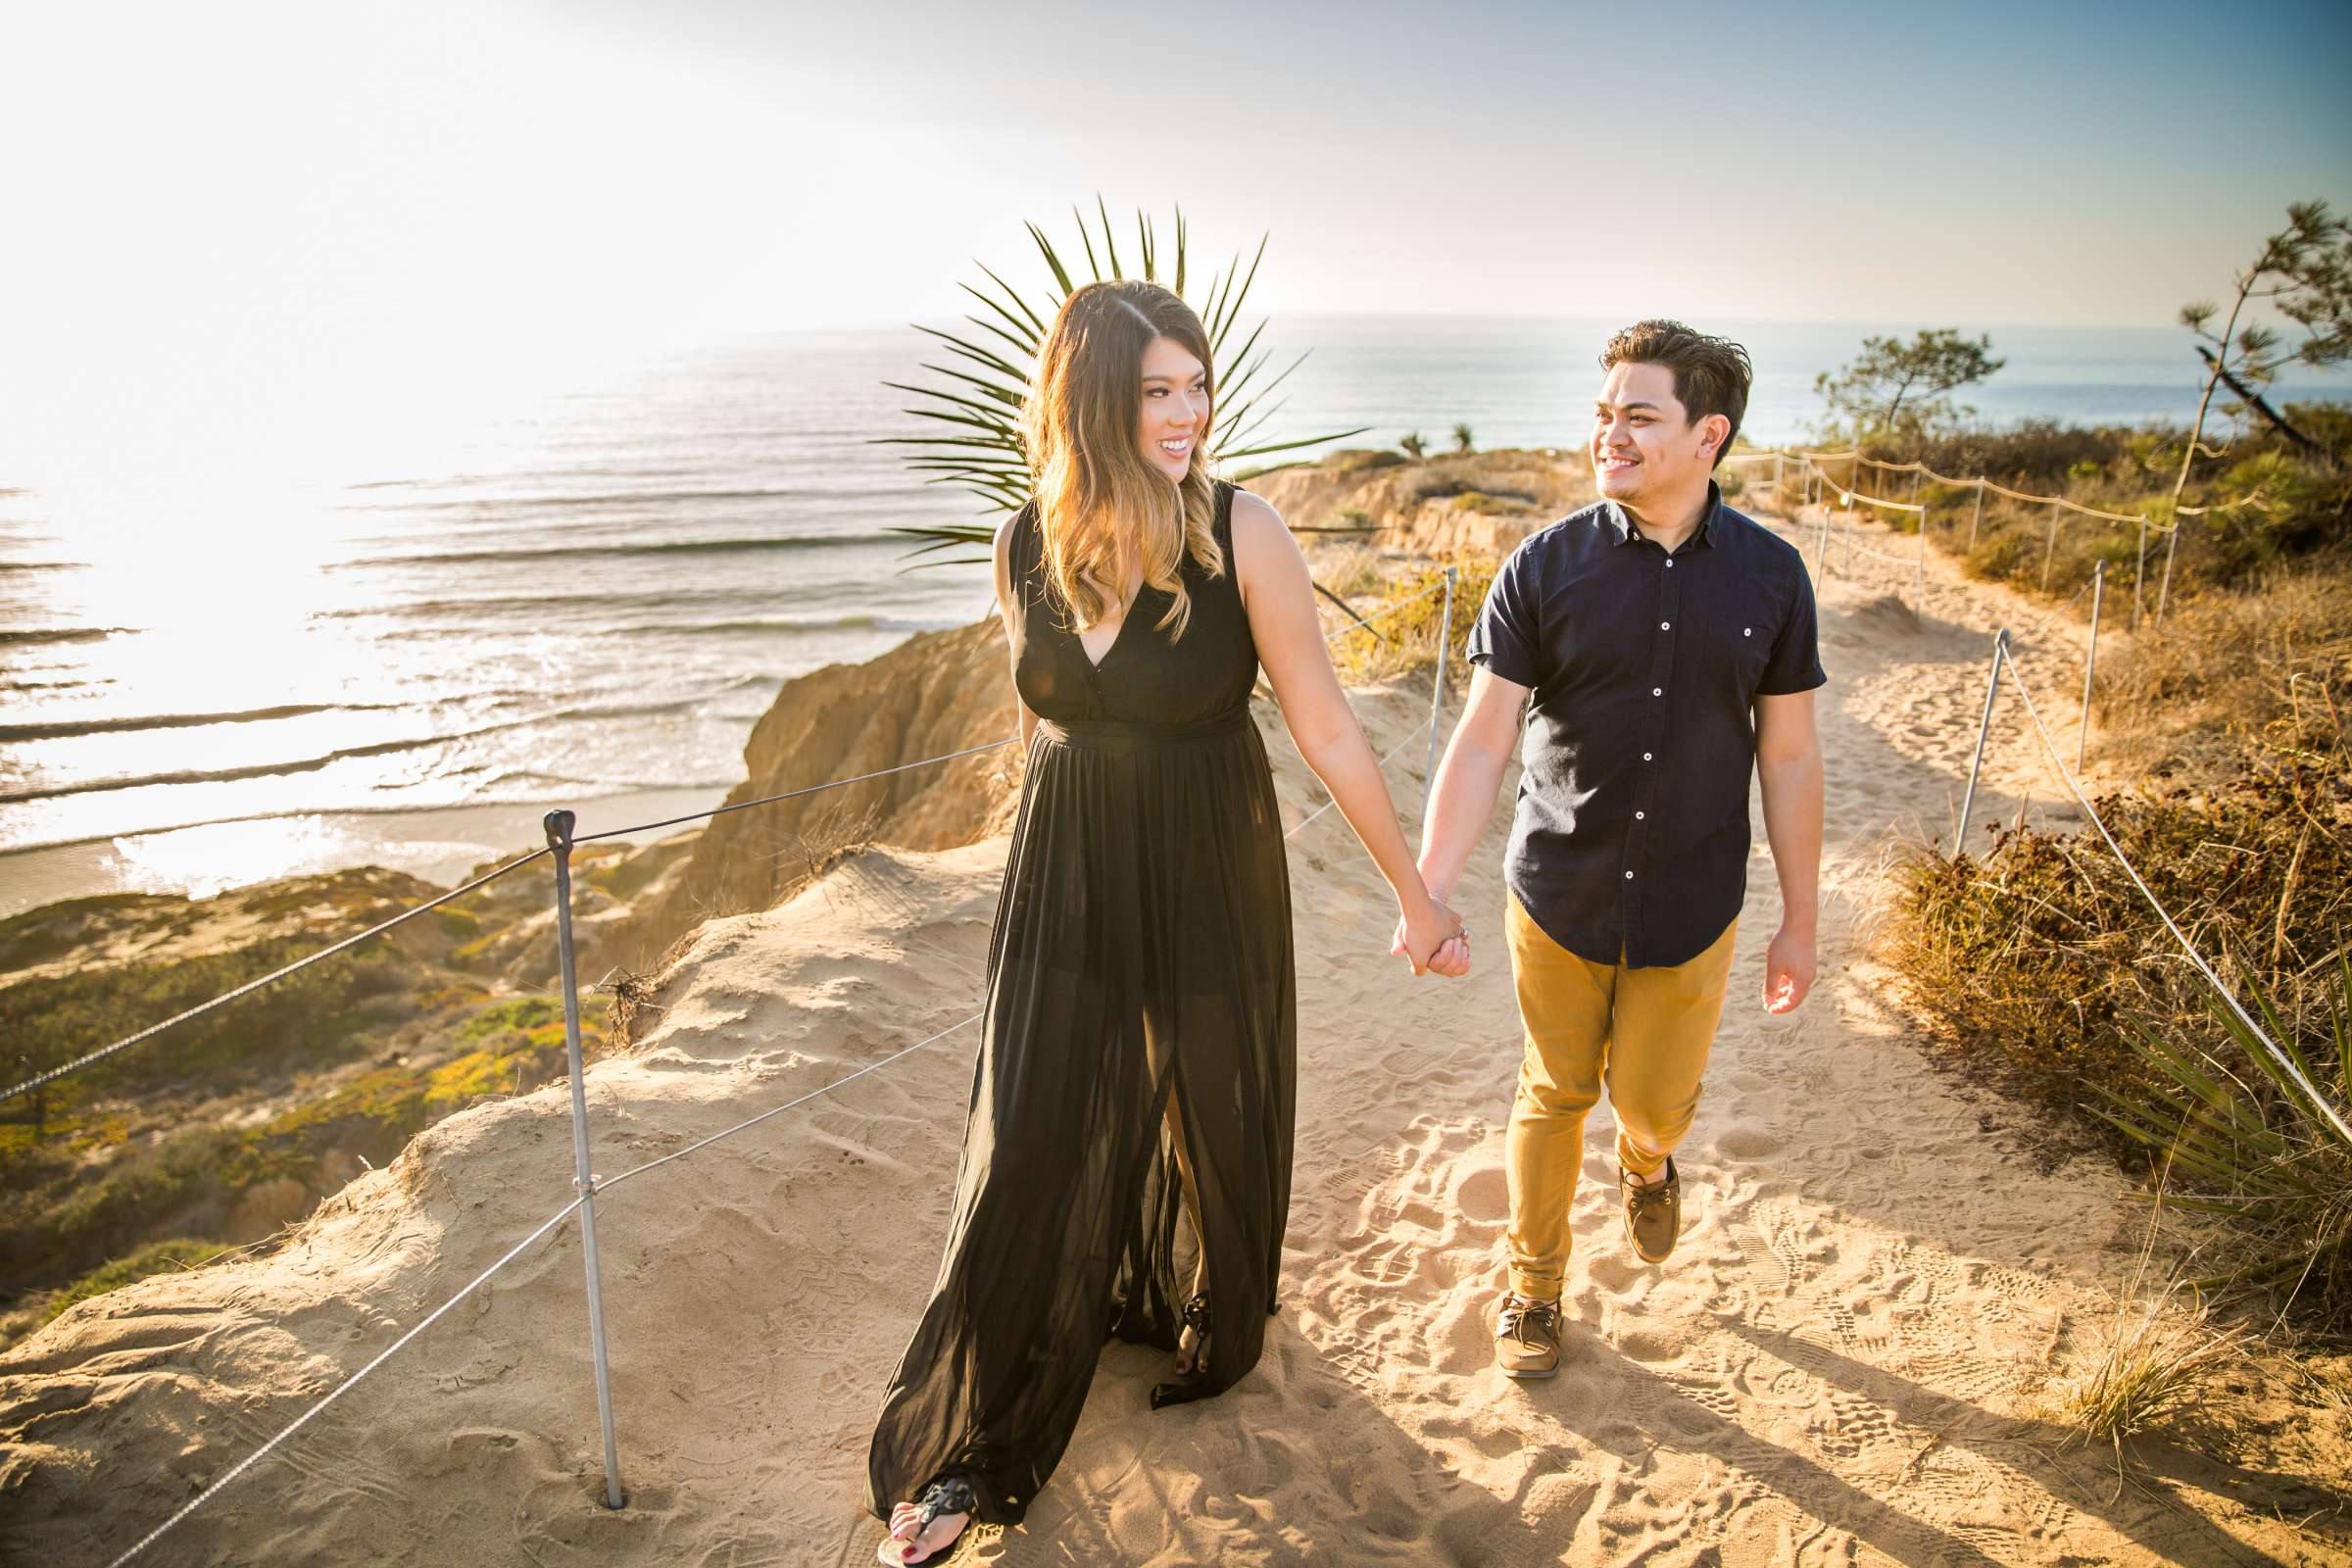 Engagement, Carmi and Loriel Engagement Photo #277872 by True Photography